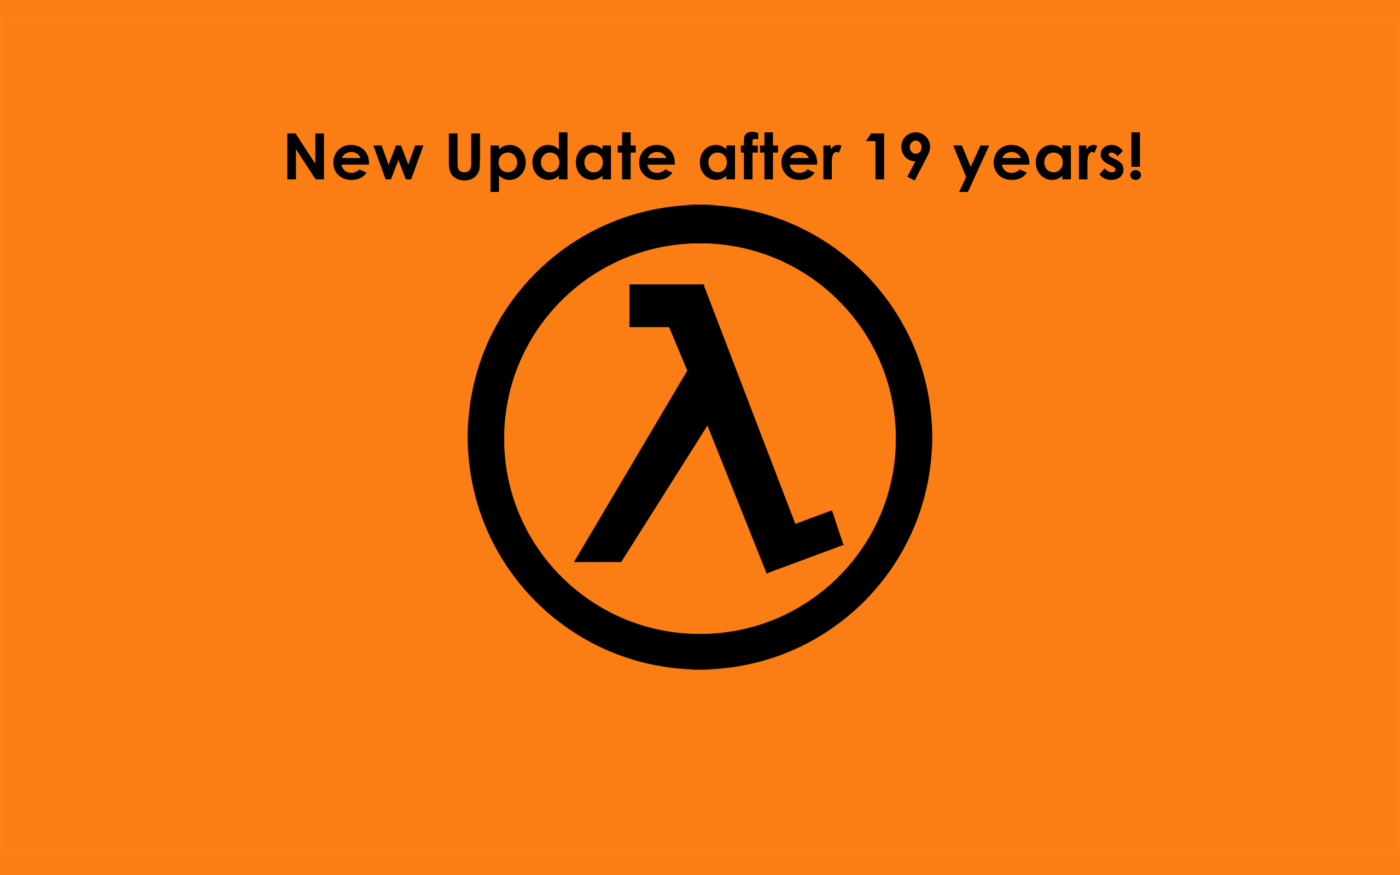 Half-Life Receives an Update, 19 Years After It's Launch